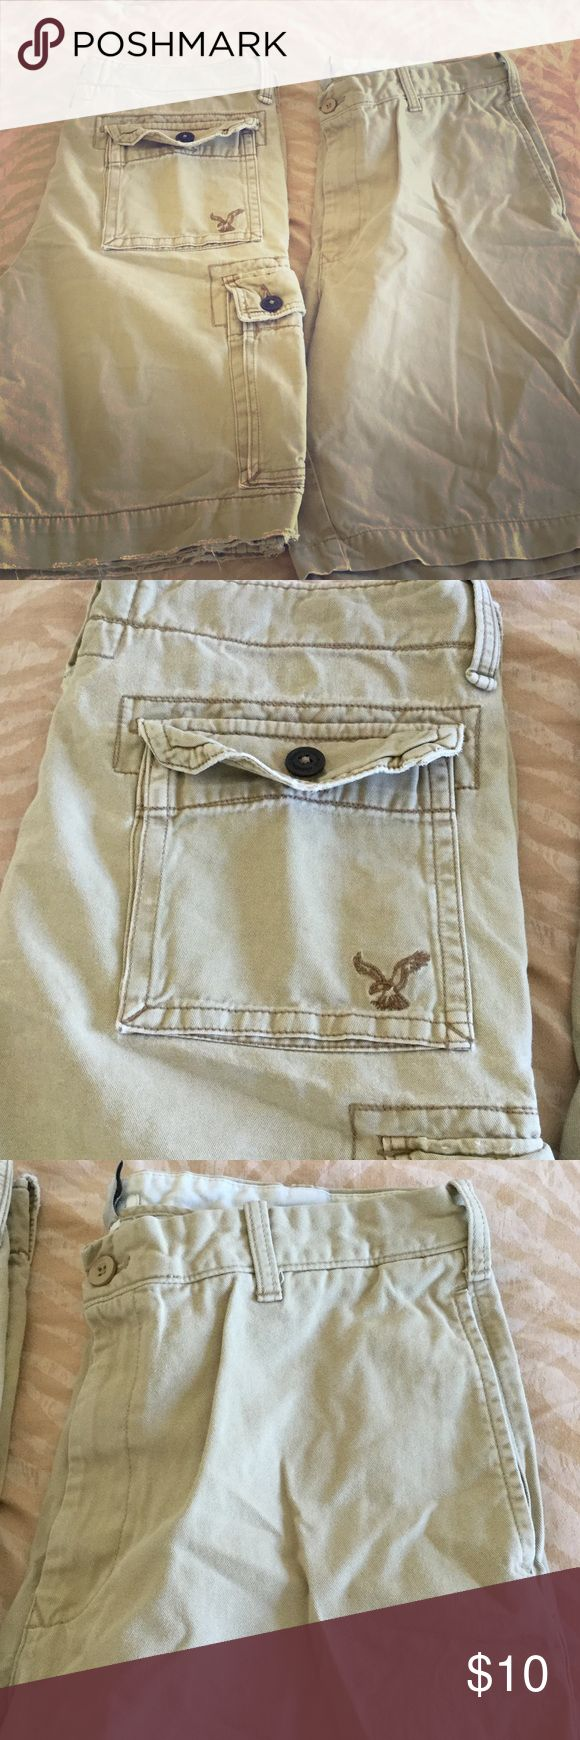 Men's khaki shorts bundle Size 34 good condition no holes.  One of the shorts is van heusen and that has no stains or holes. And the other is American eagle. That has a tiny stain on front american eagle Shorts